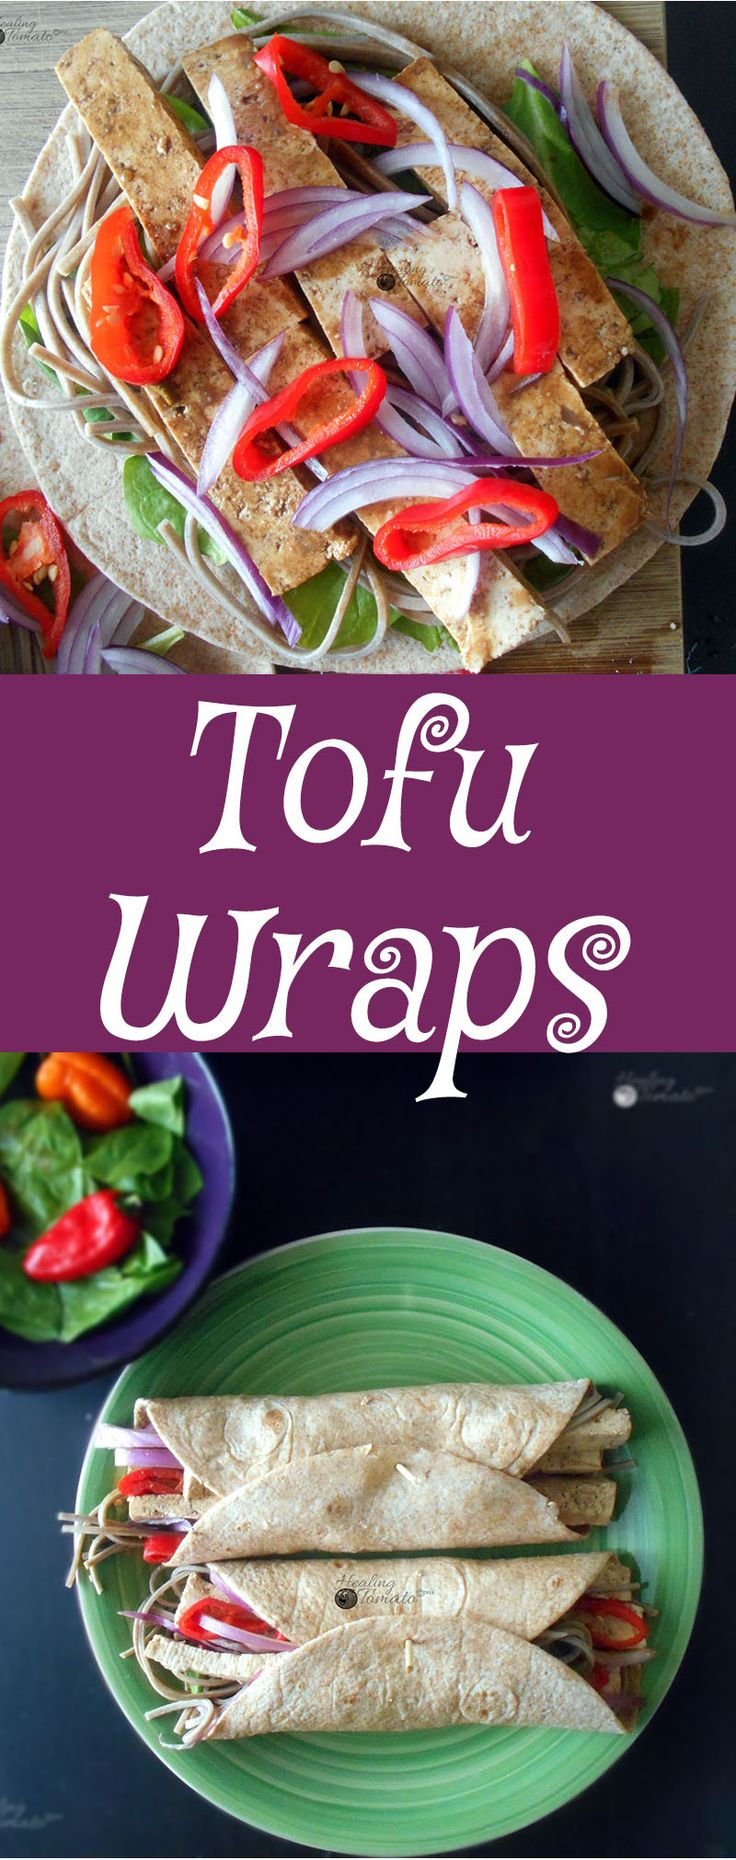 Vegan Tofu Wraps made with Tofu marinated in Peanut sauce.  Quick snack idea, Healthy recipe.  If you are looking for an easy dinner or easy lunch recipe, this is a perfect vegetarian recipe for you